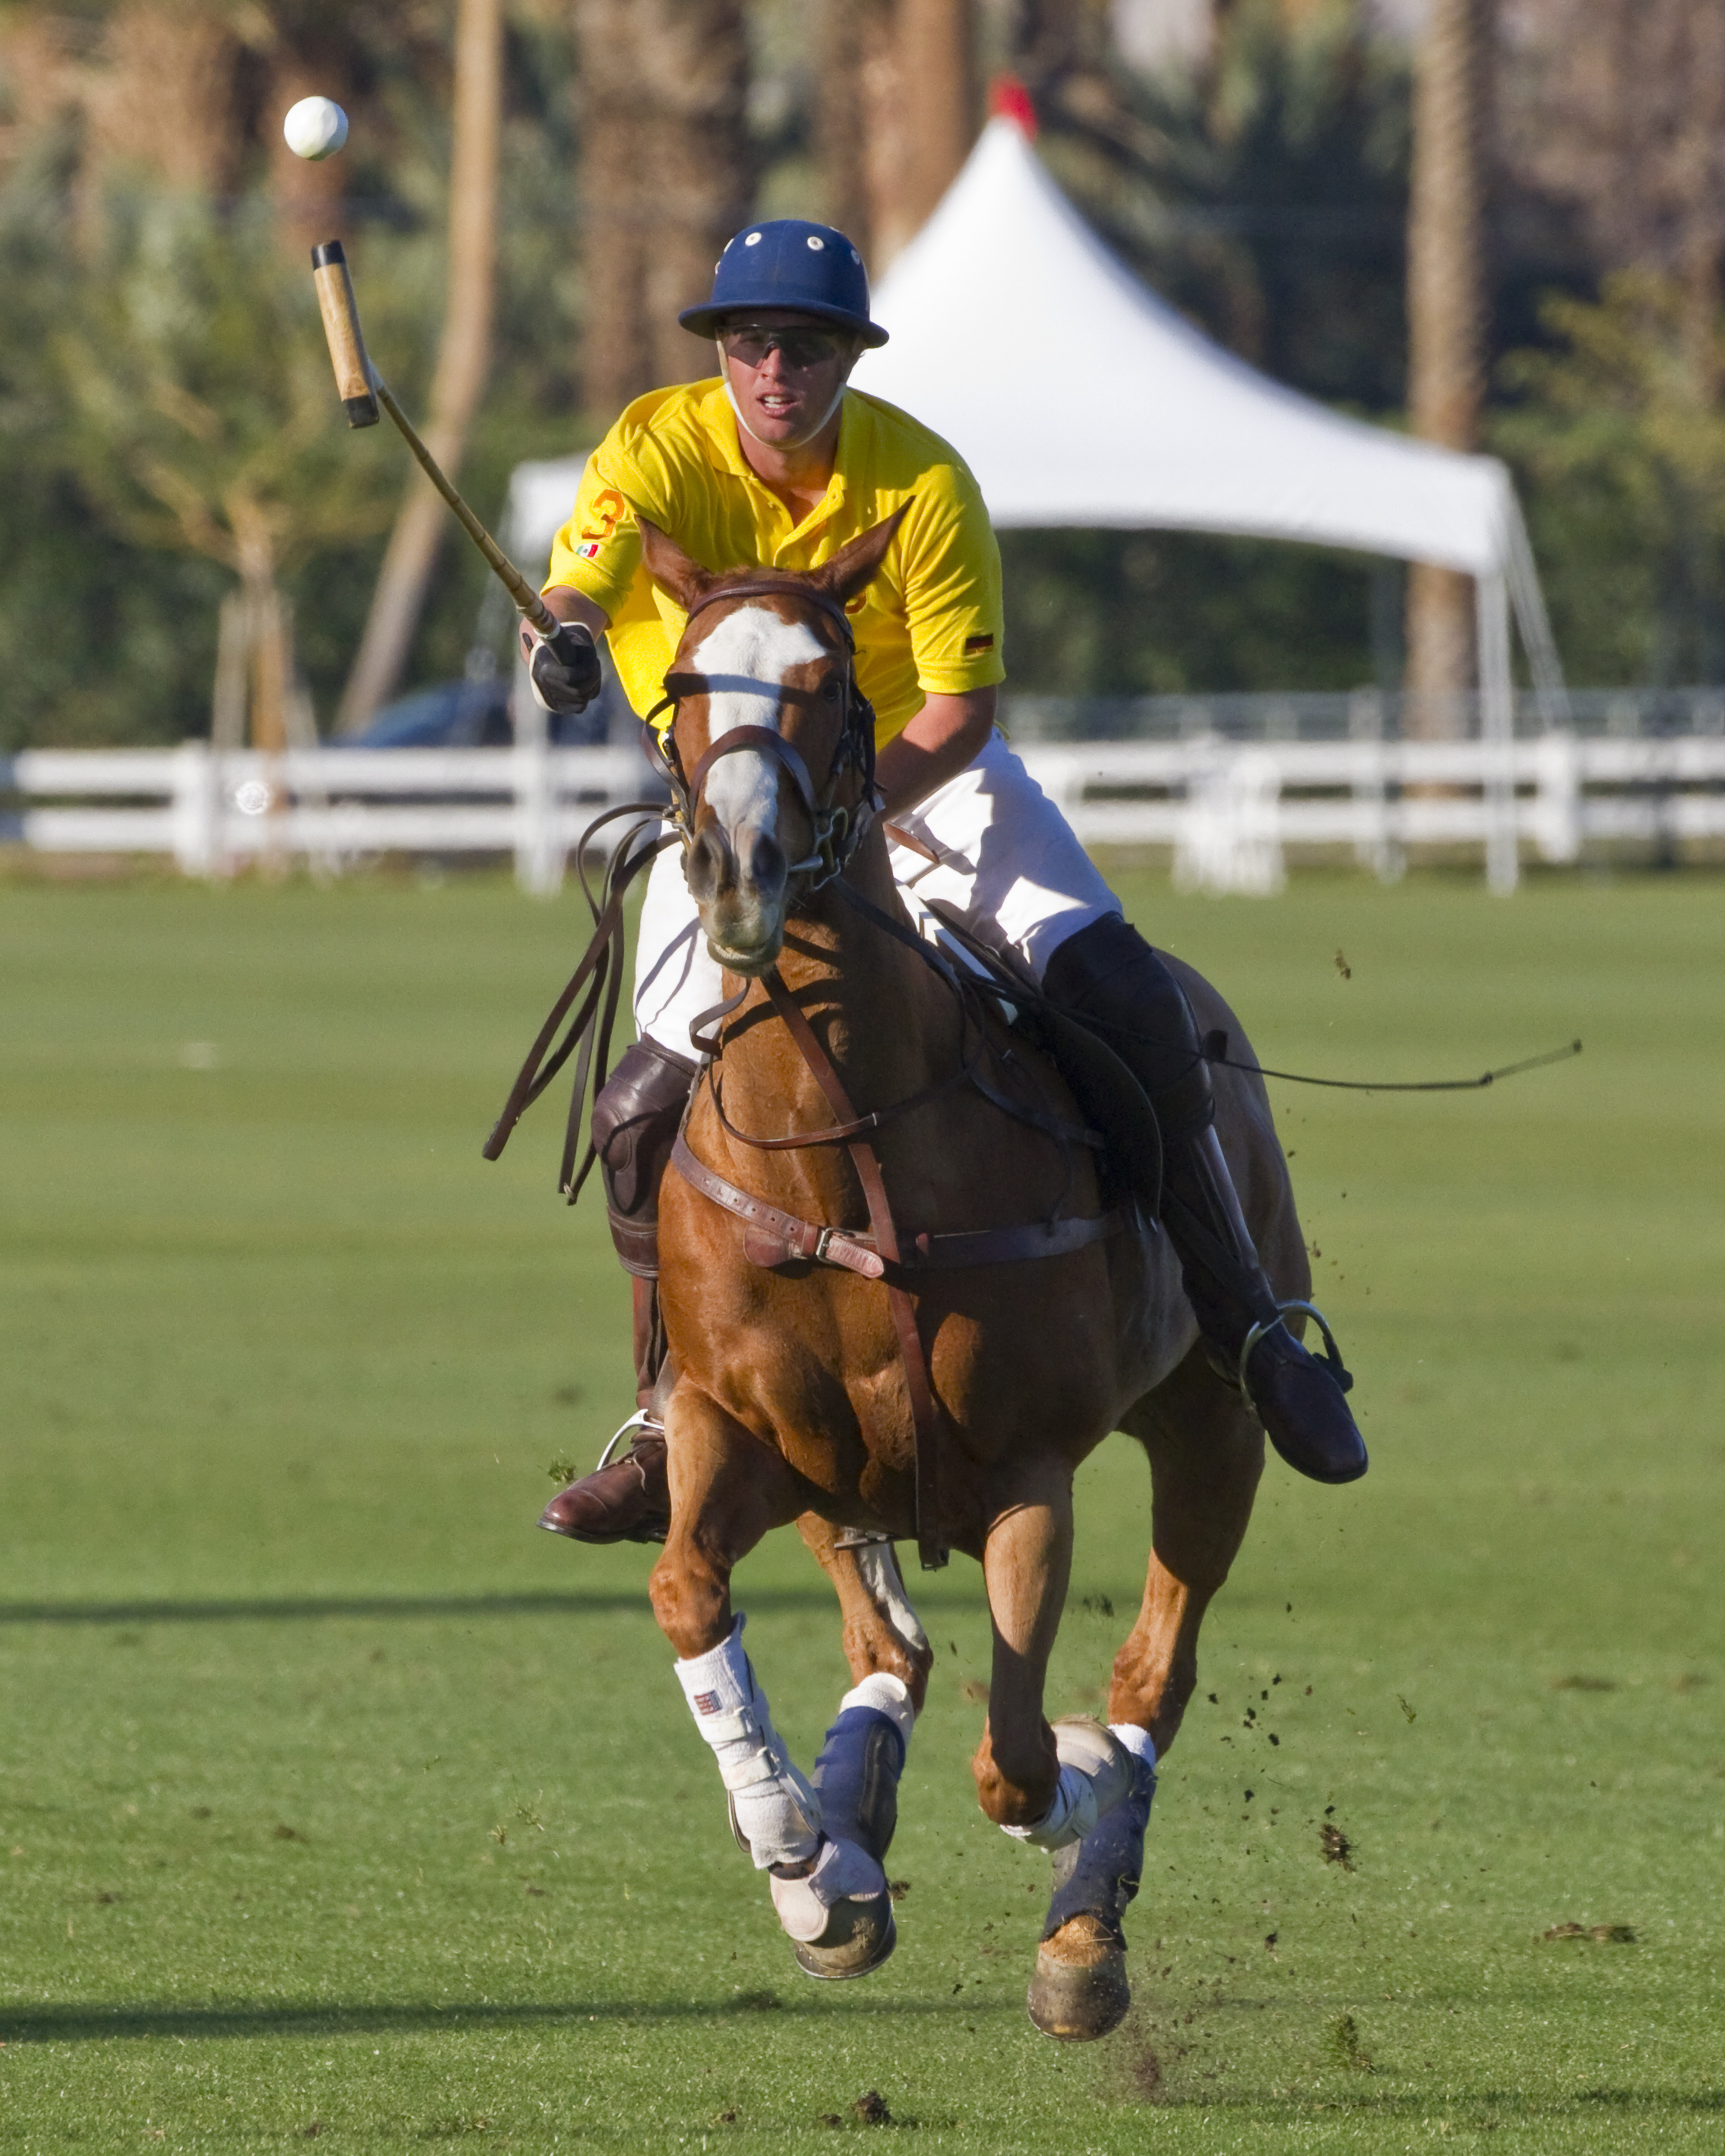 The Polo Handicap